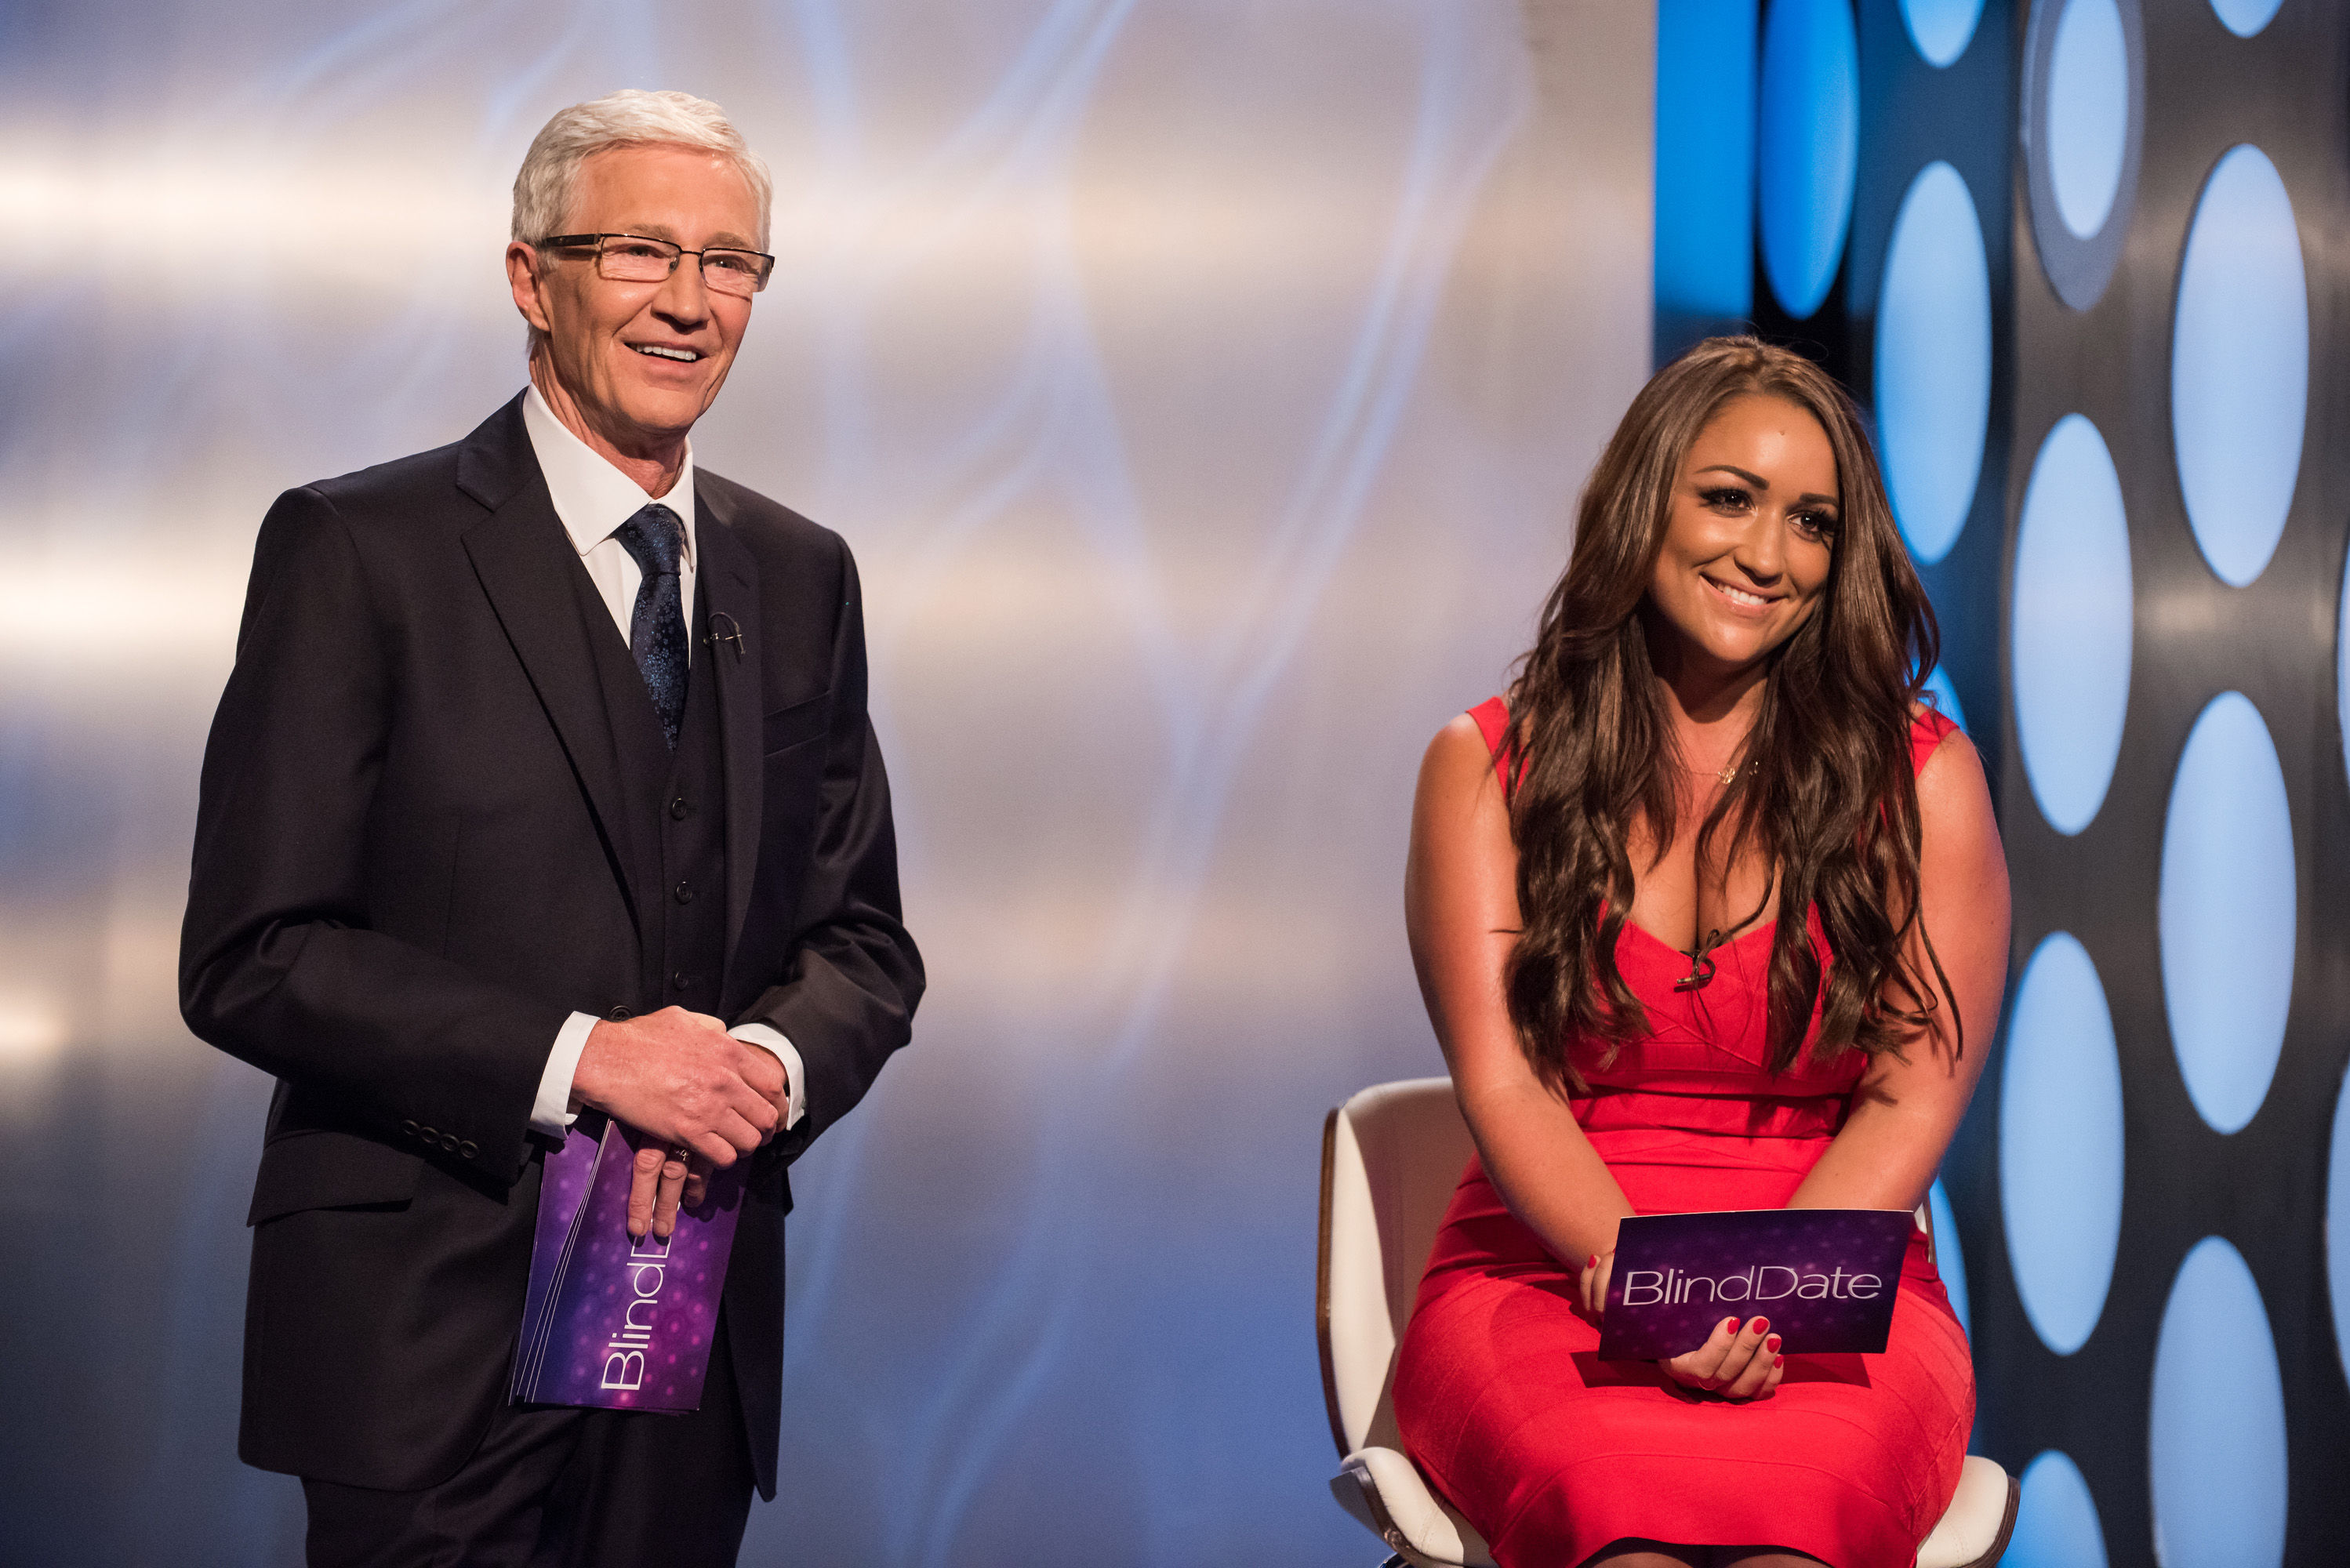 Blind Date (Channel 5)